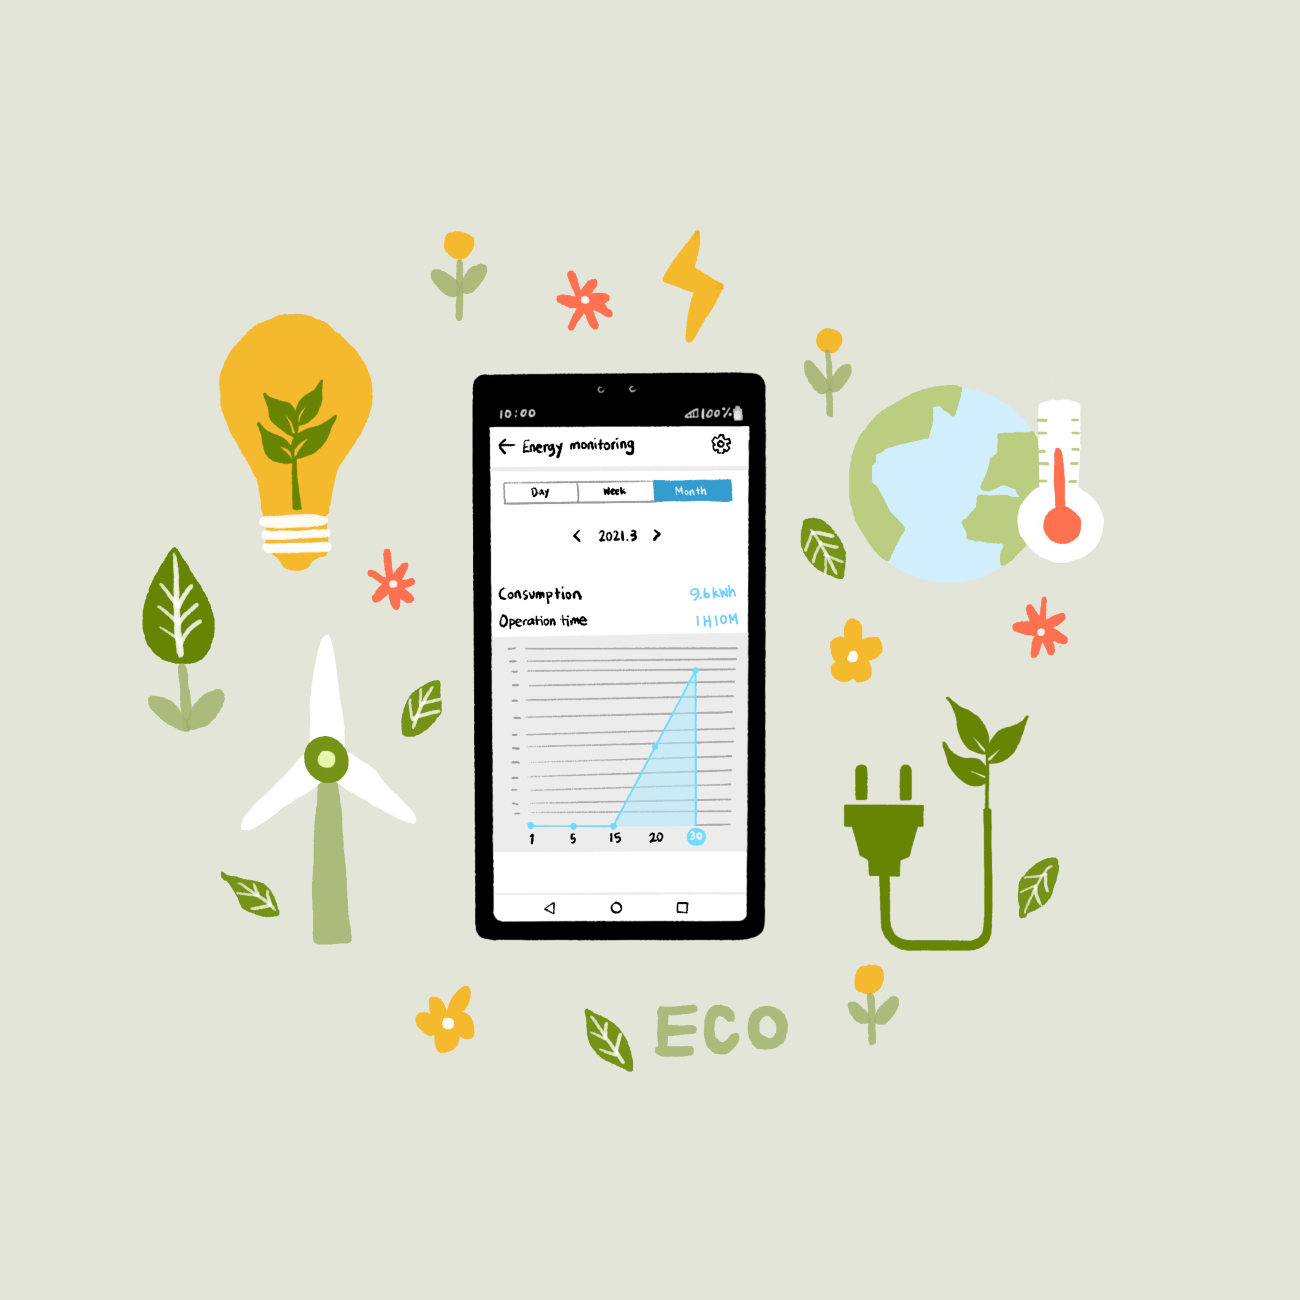 An illustration of a smartphone displaying the LG ThinQ app's Energy Dashboard, with images of the Earth, a wind turbine and a lightbulb representing its eco-friendly purpose